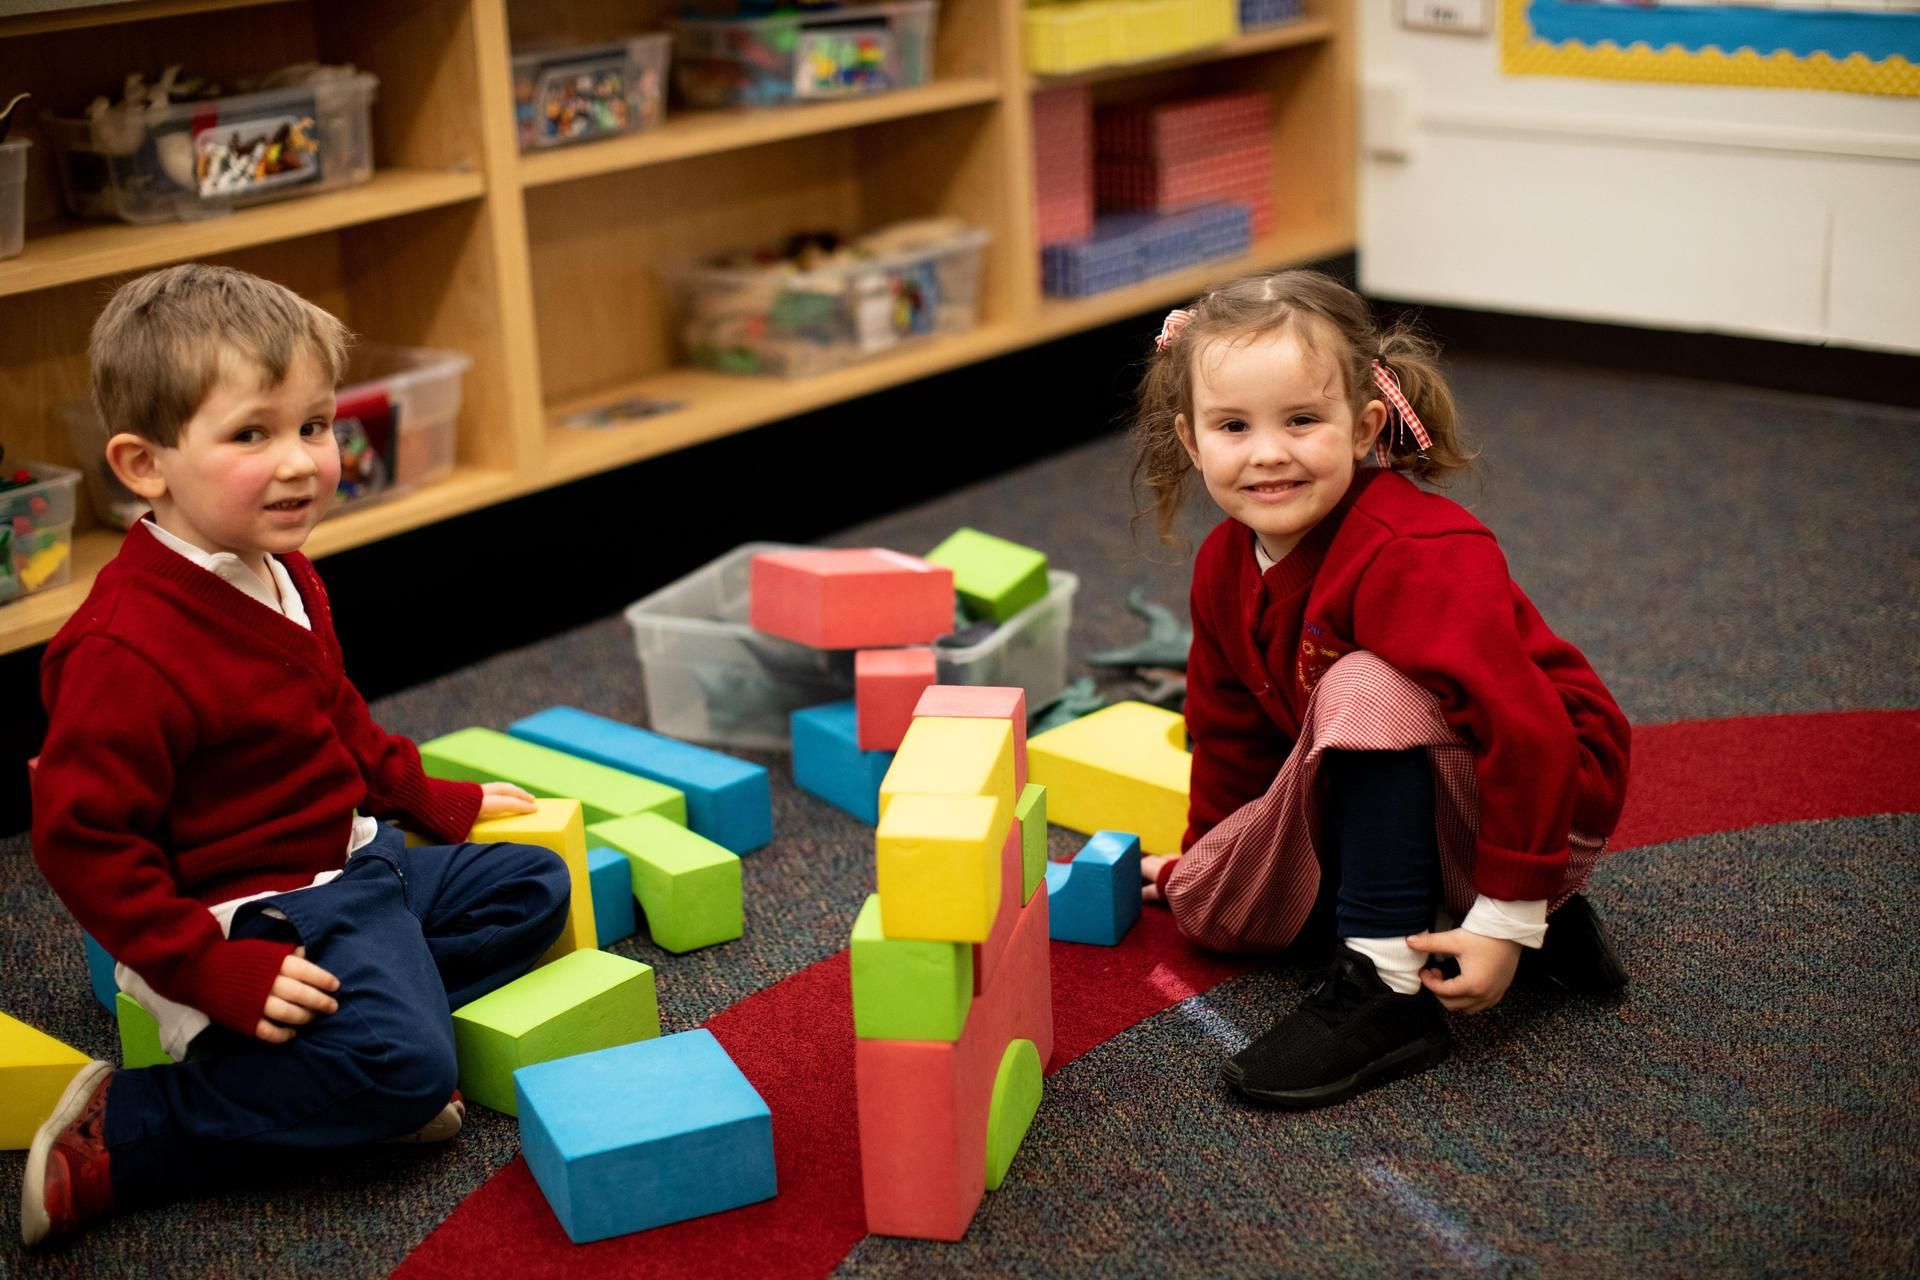 Preschool students playing with building blocks